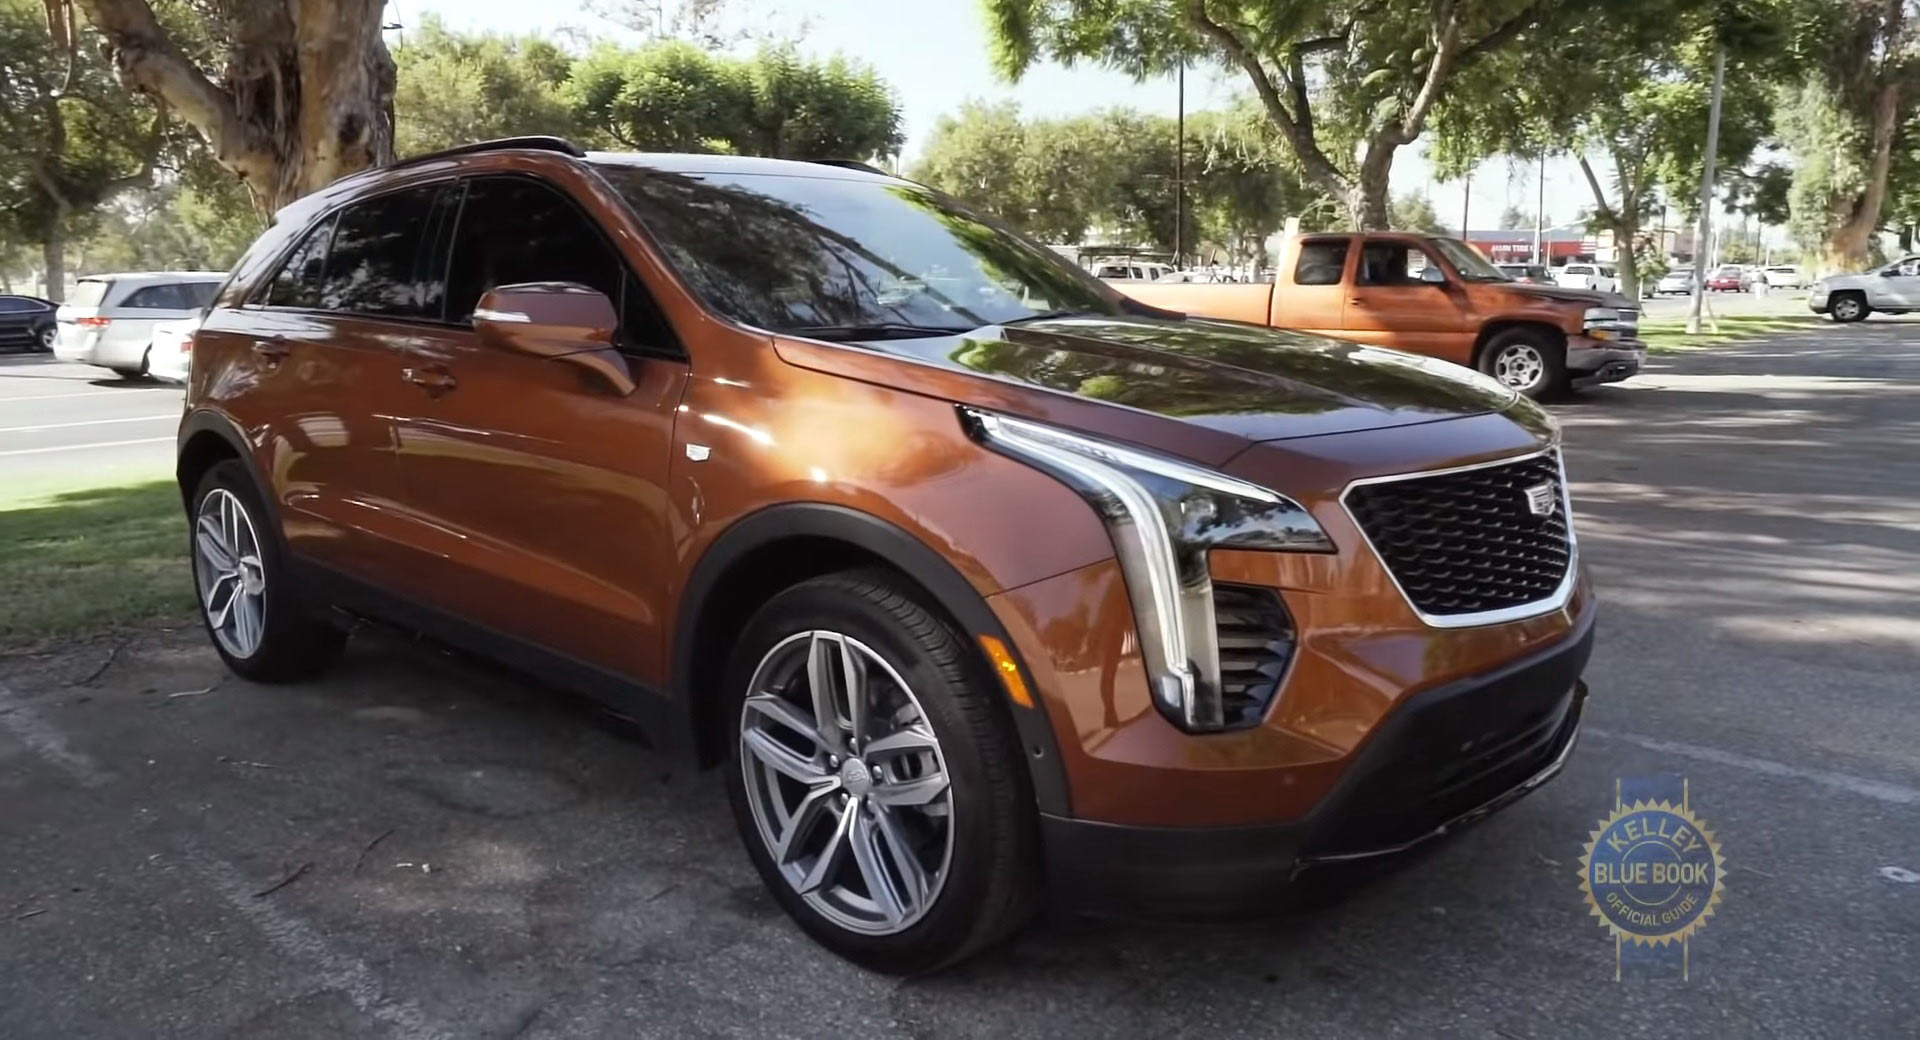 New Cadillac Xt4 Time To Find Out If The Compact Suv Was